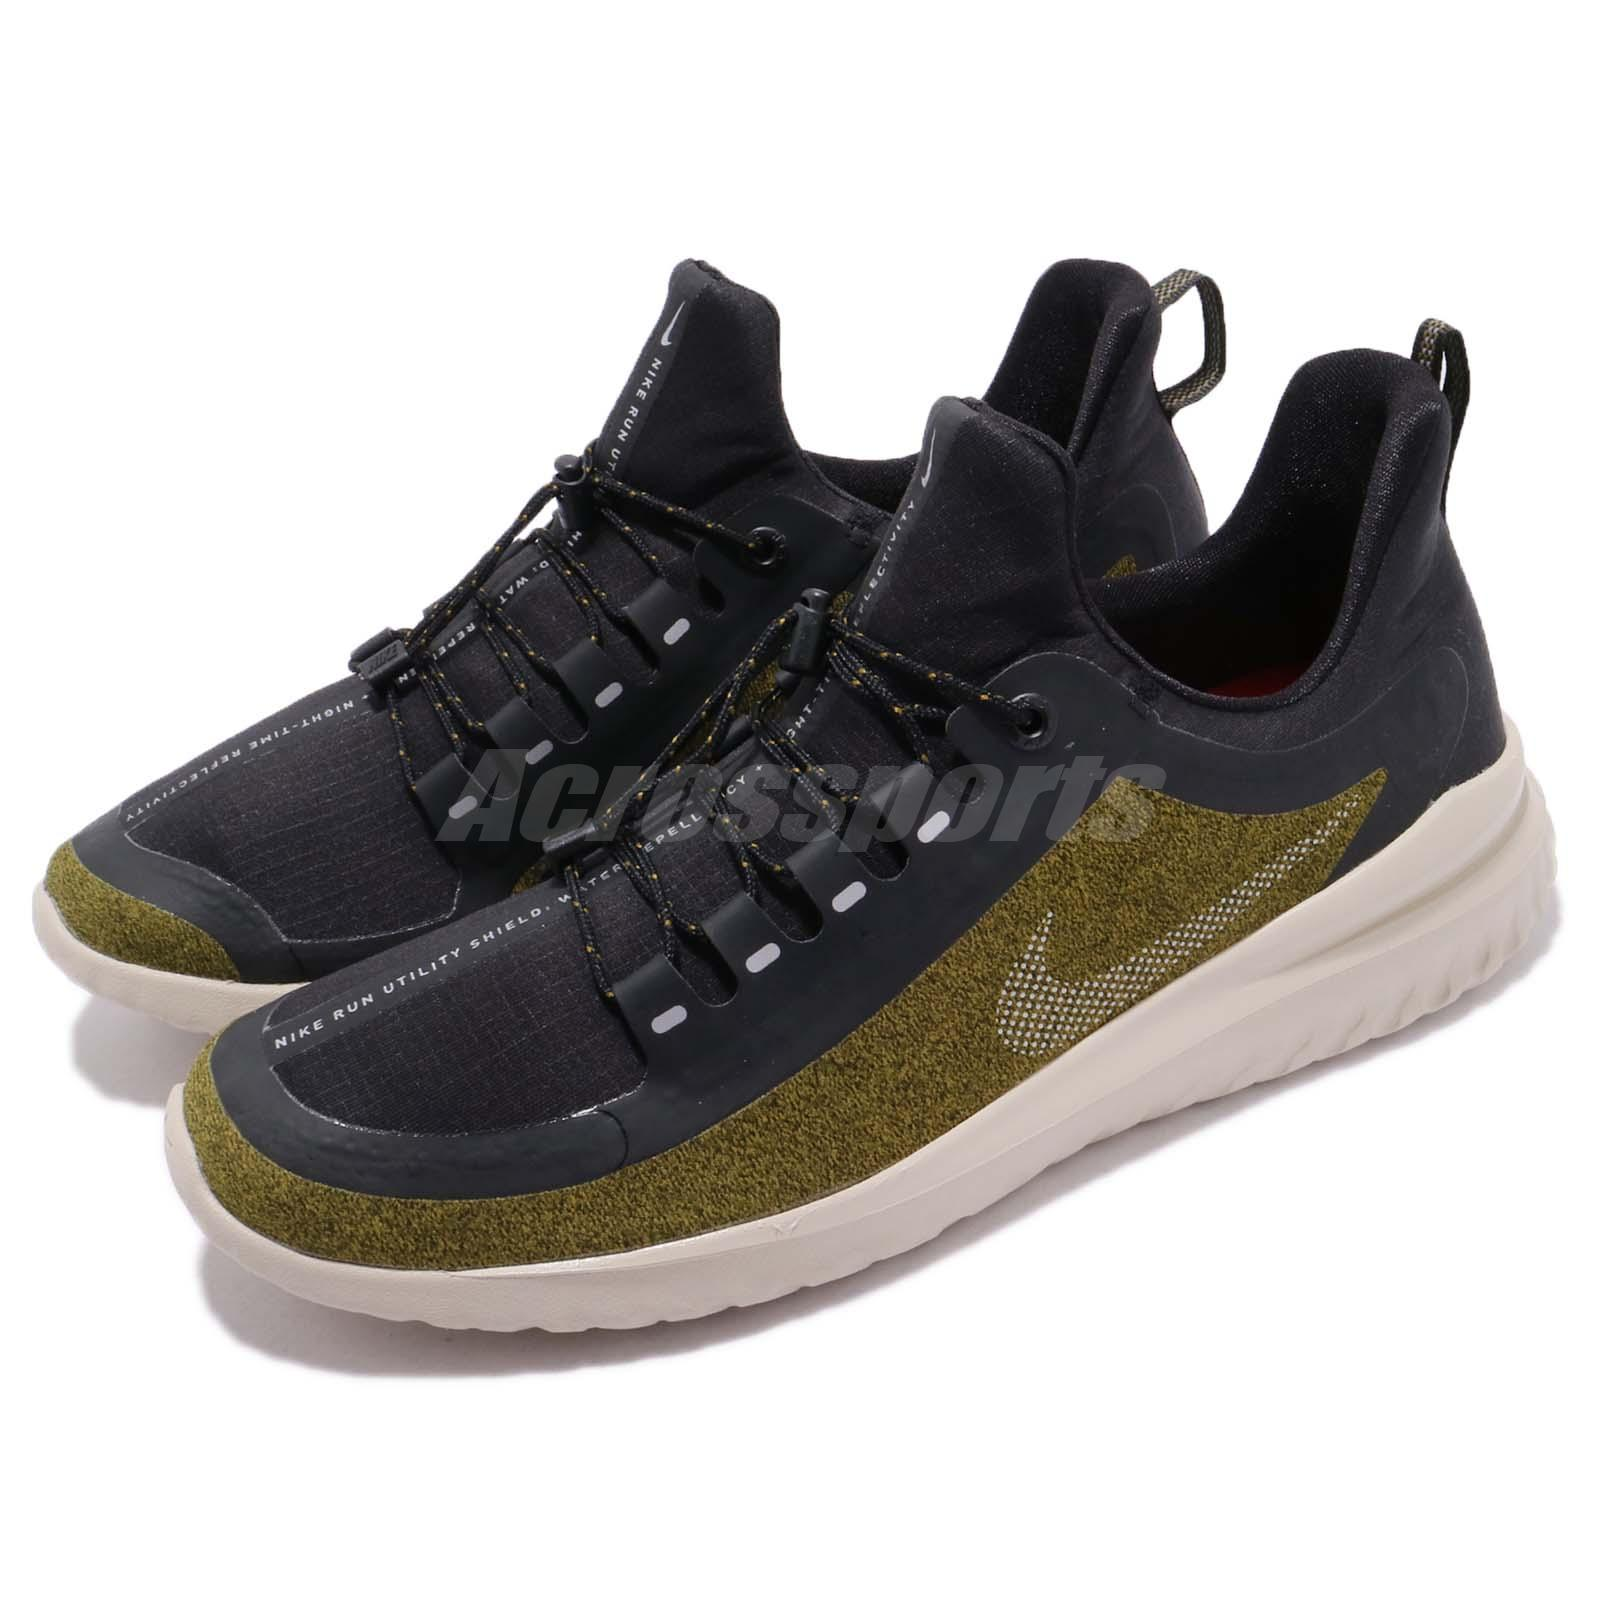 3f7ab52f215e5 Details about Nike Renew Rival Shield Sequoia Silver Men Running Shoes  Sneakers AR0022-300